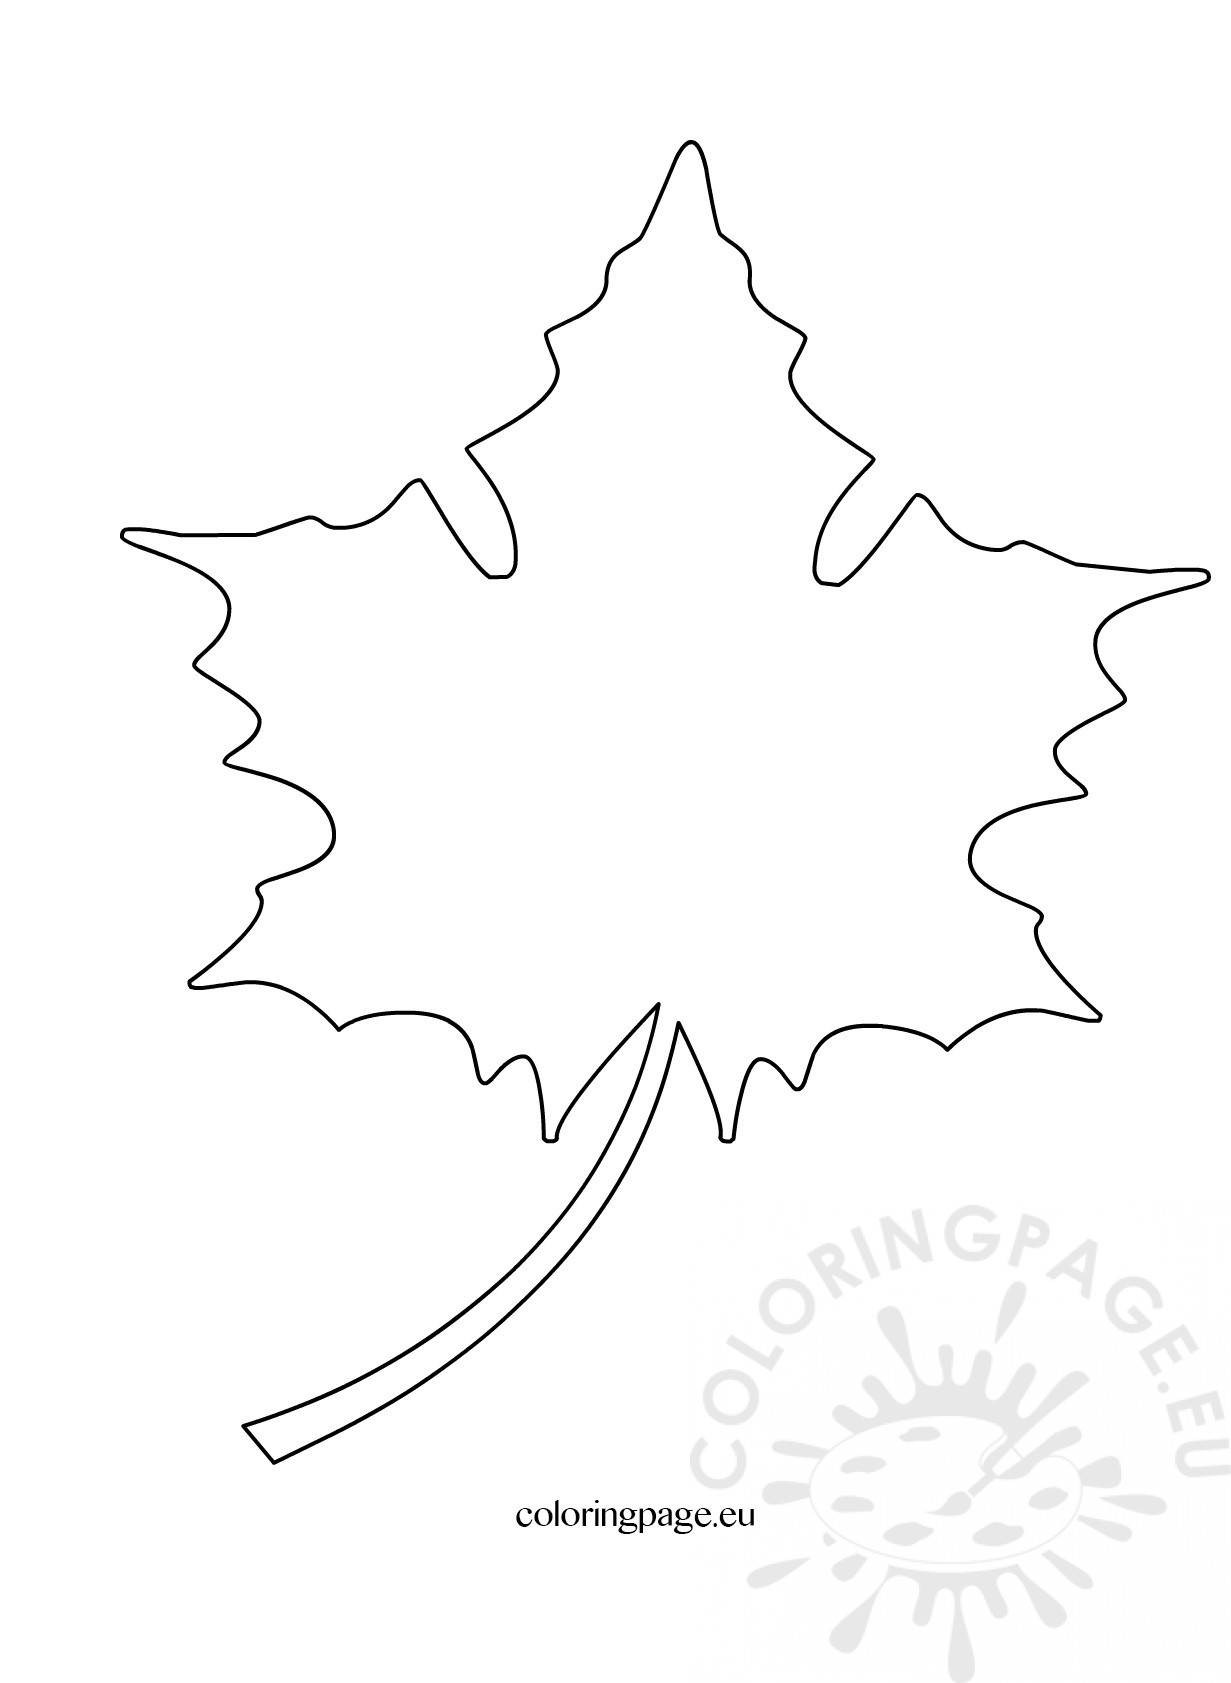 Maple leaf cut out pattern coloring page maple leaf cut out pattern pronofoot35fo Image collections